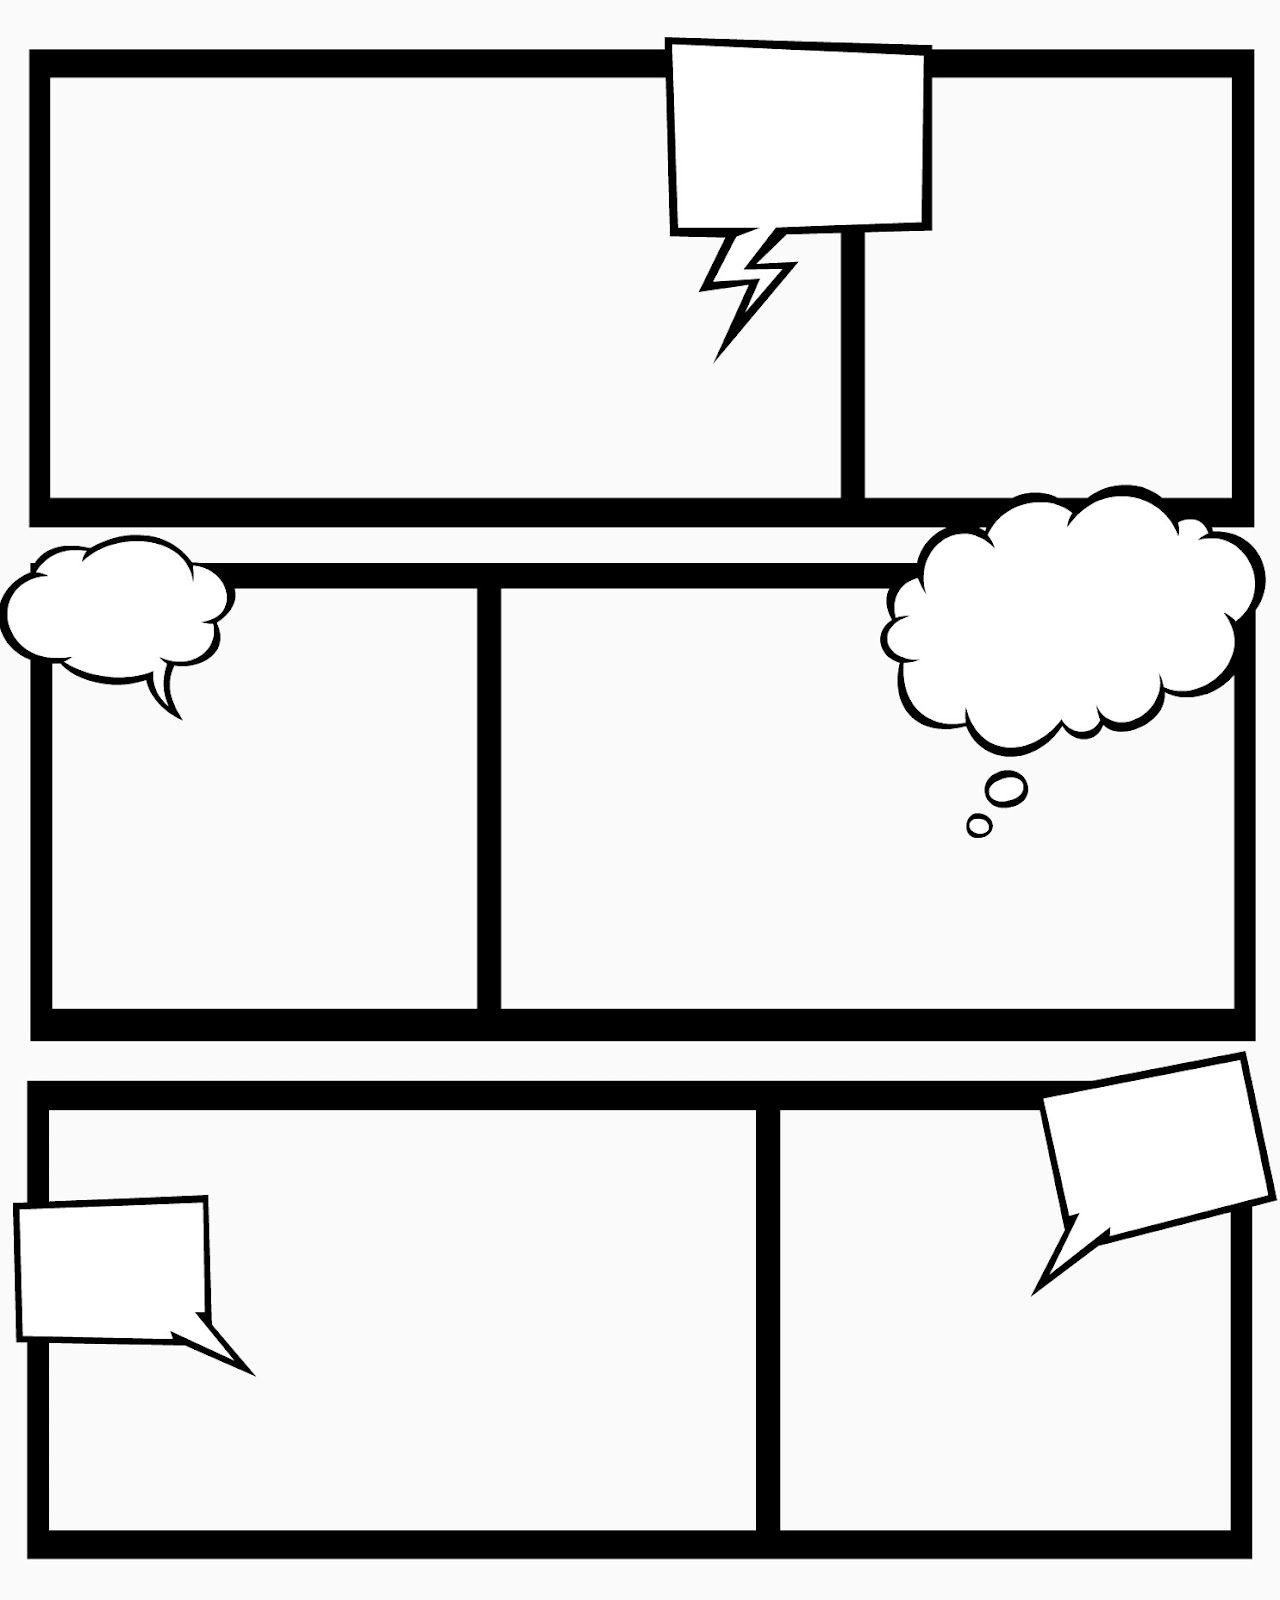 Sweet Hot Mess Free Printable Comic Book Templates And This Blogger Uses Them To Teach Her Kids About Story Structure Etc Very Cool